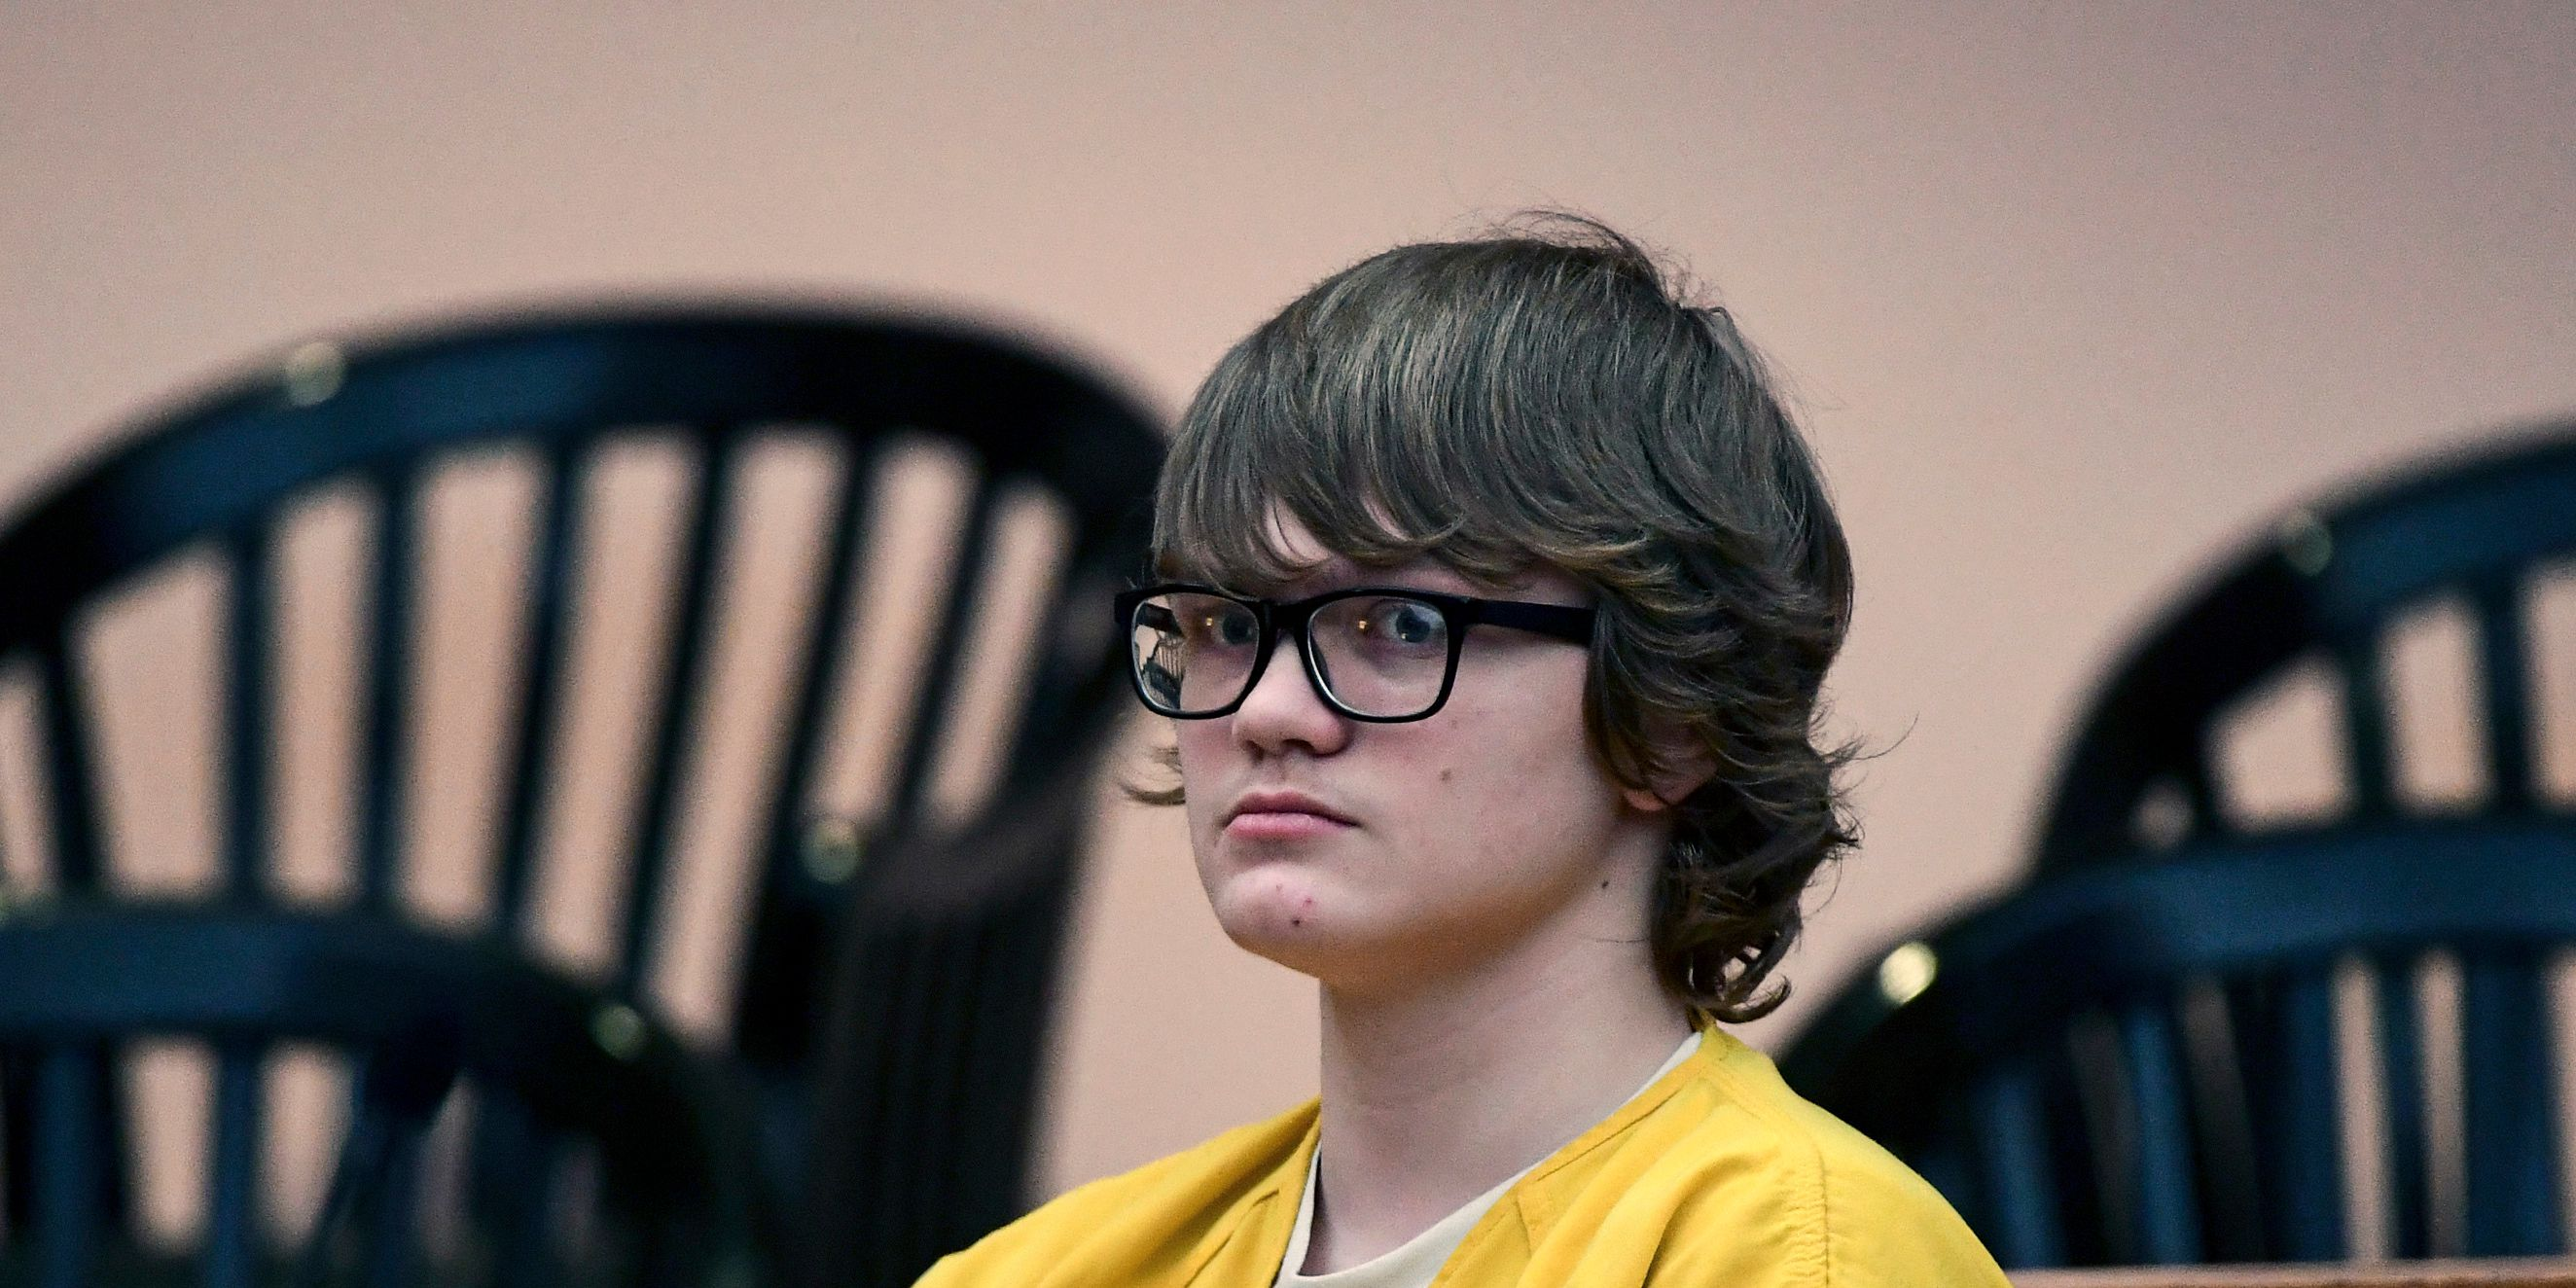 Teen SC school shooter gets life for killing 1st grader